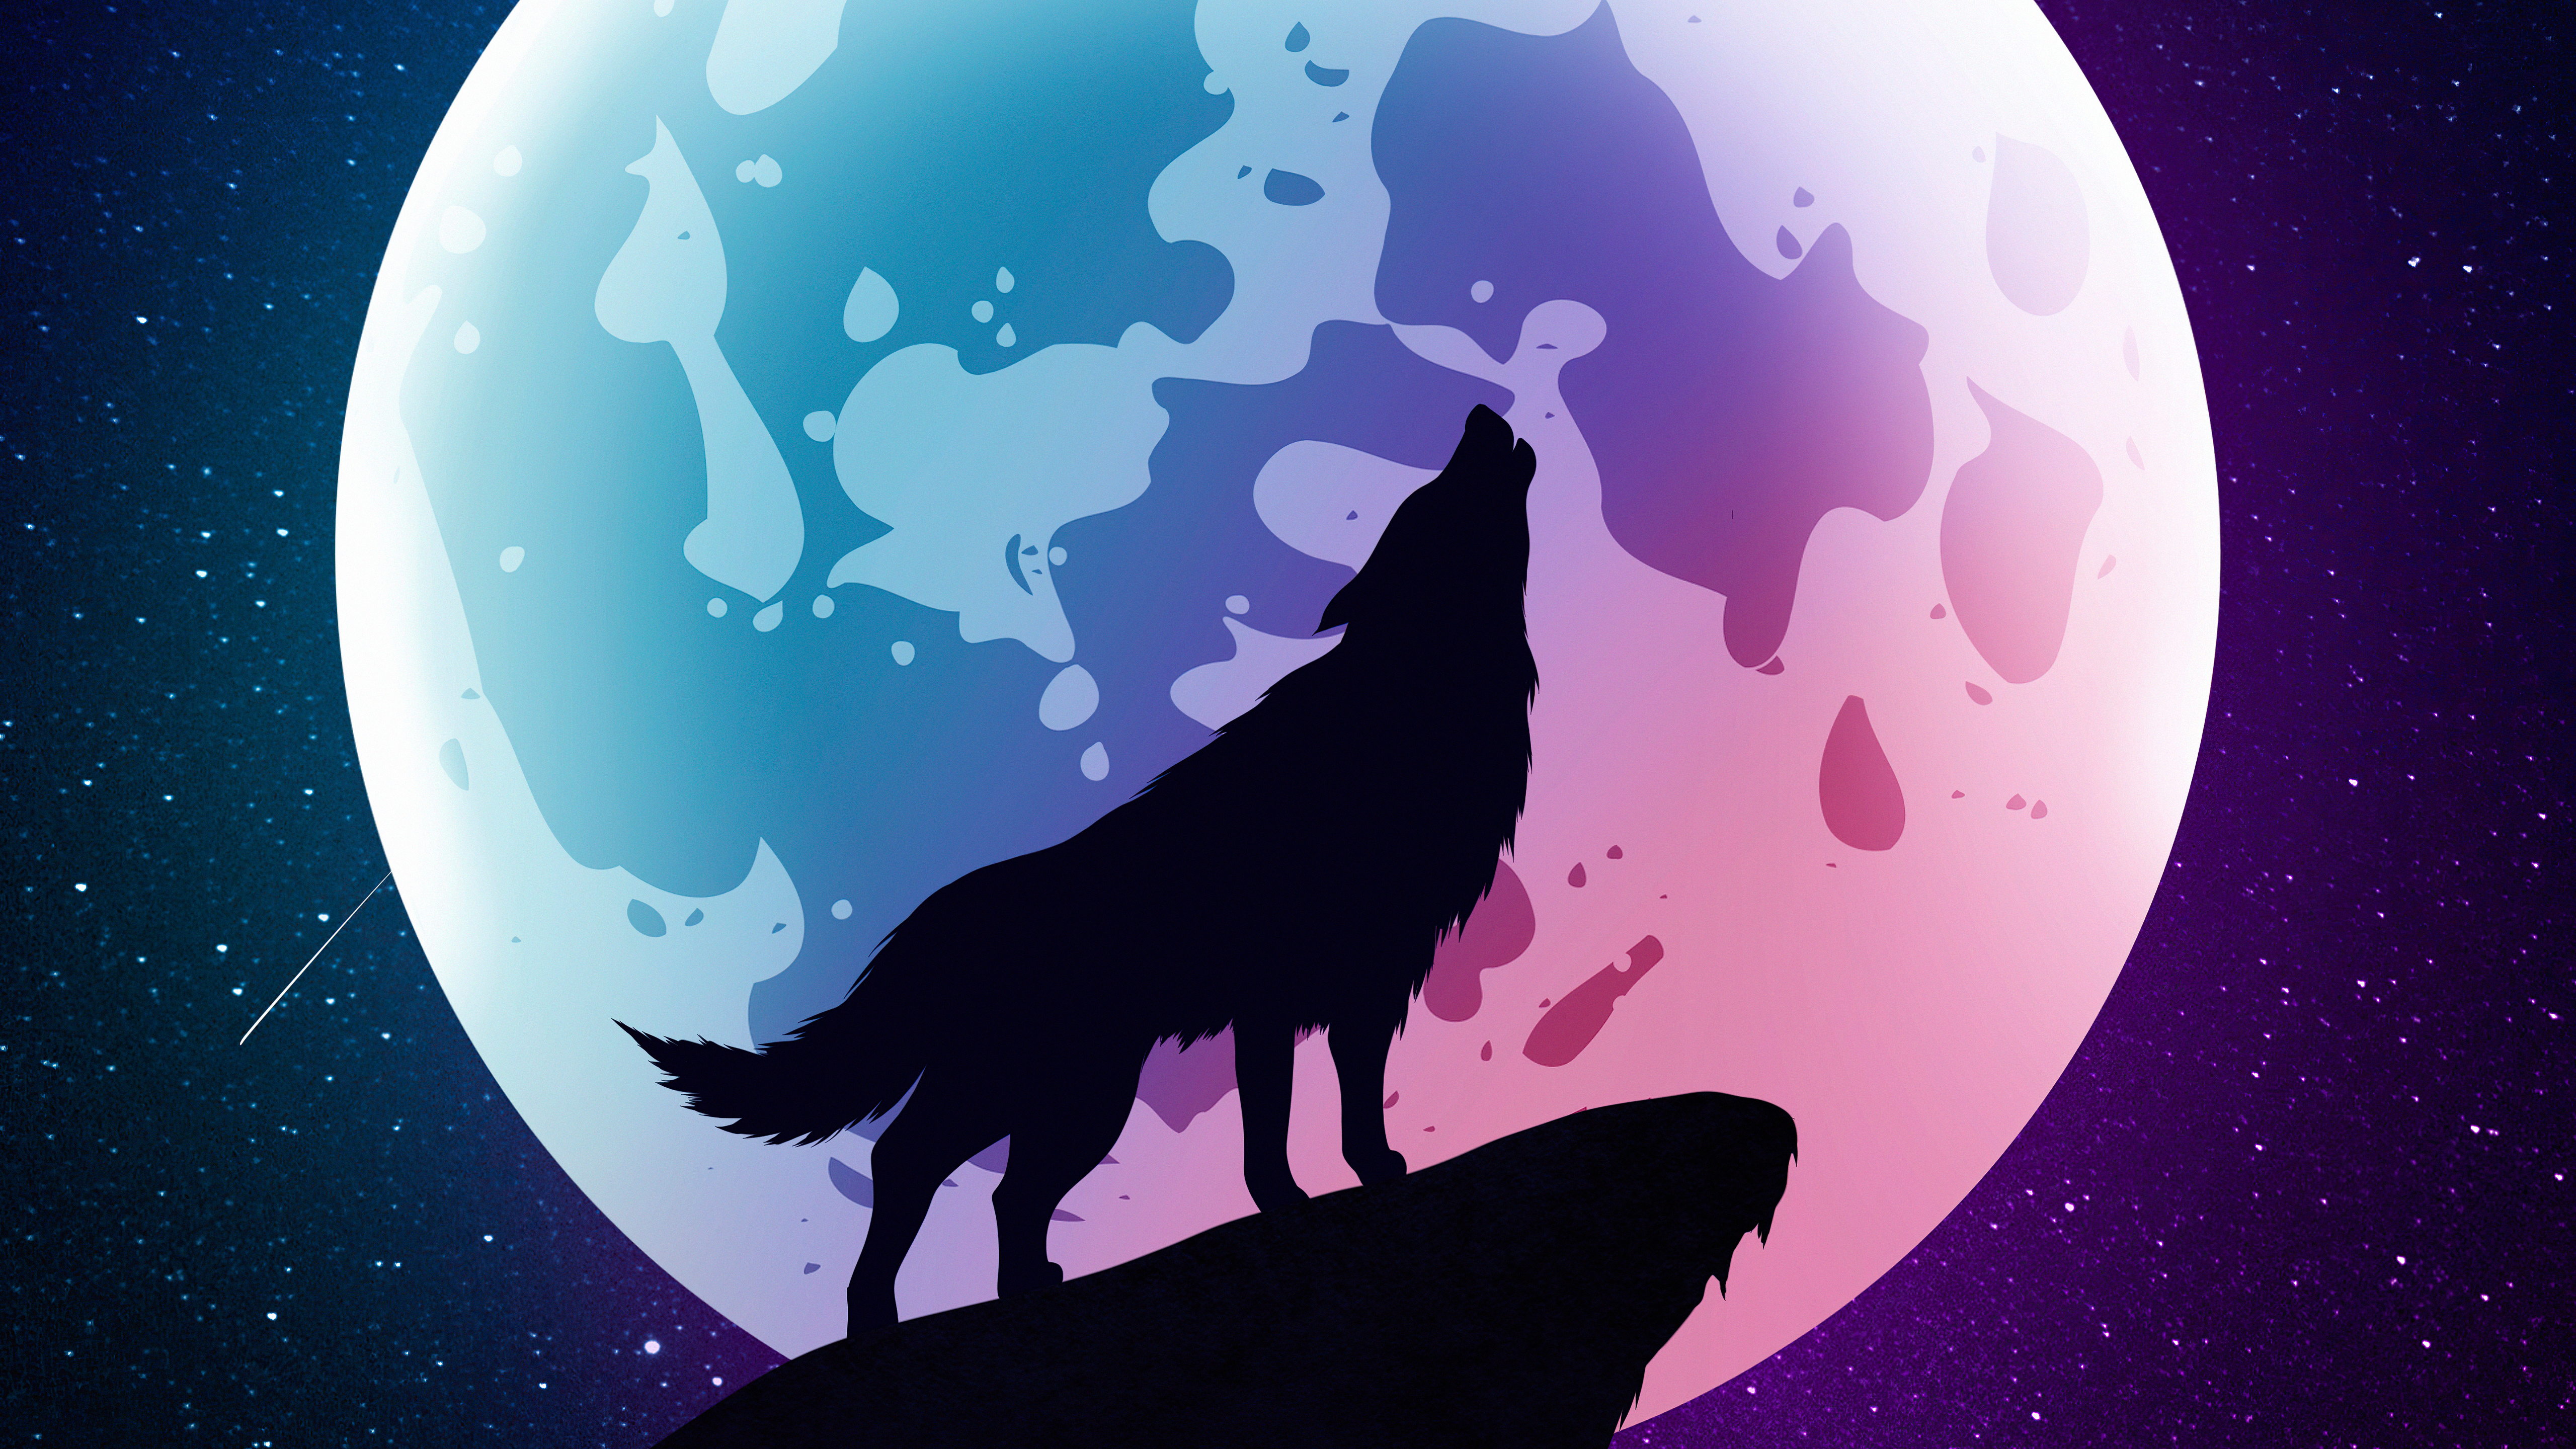 wolf howling moon night minimal 4k 1618132771 - Wolf Howling Moon Night Minimal 4k - Wolf Howling Moon Night Minimal 4k wallpapers